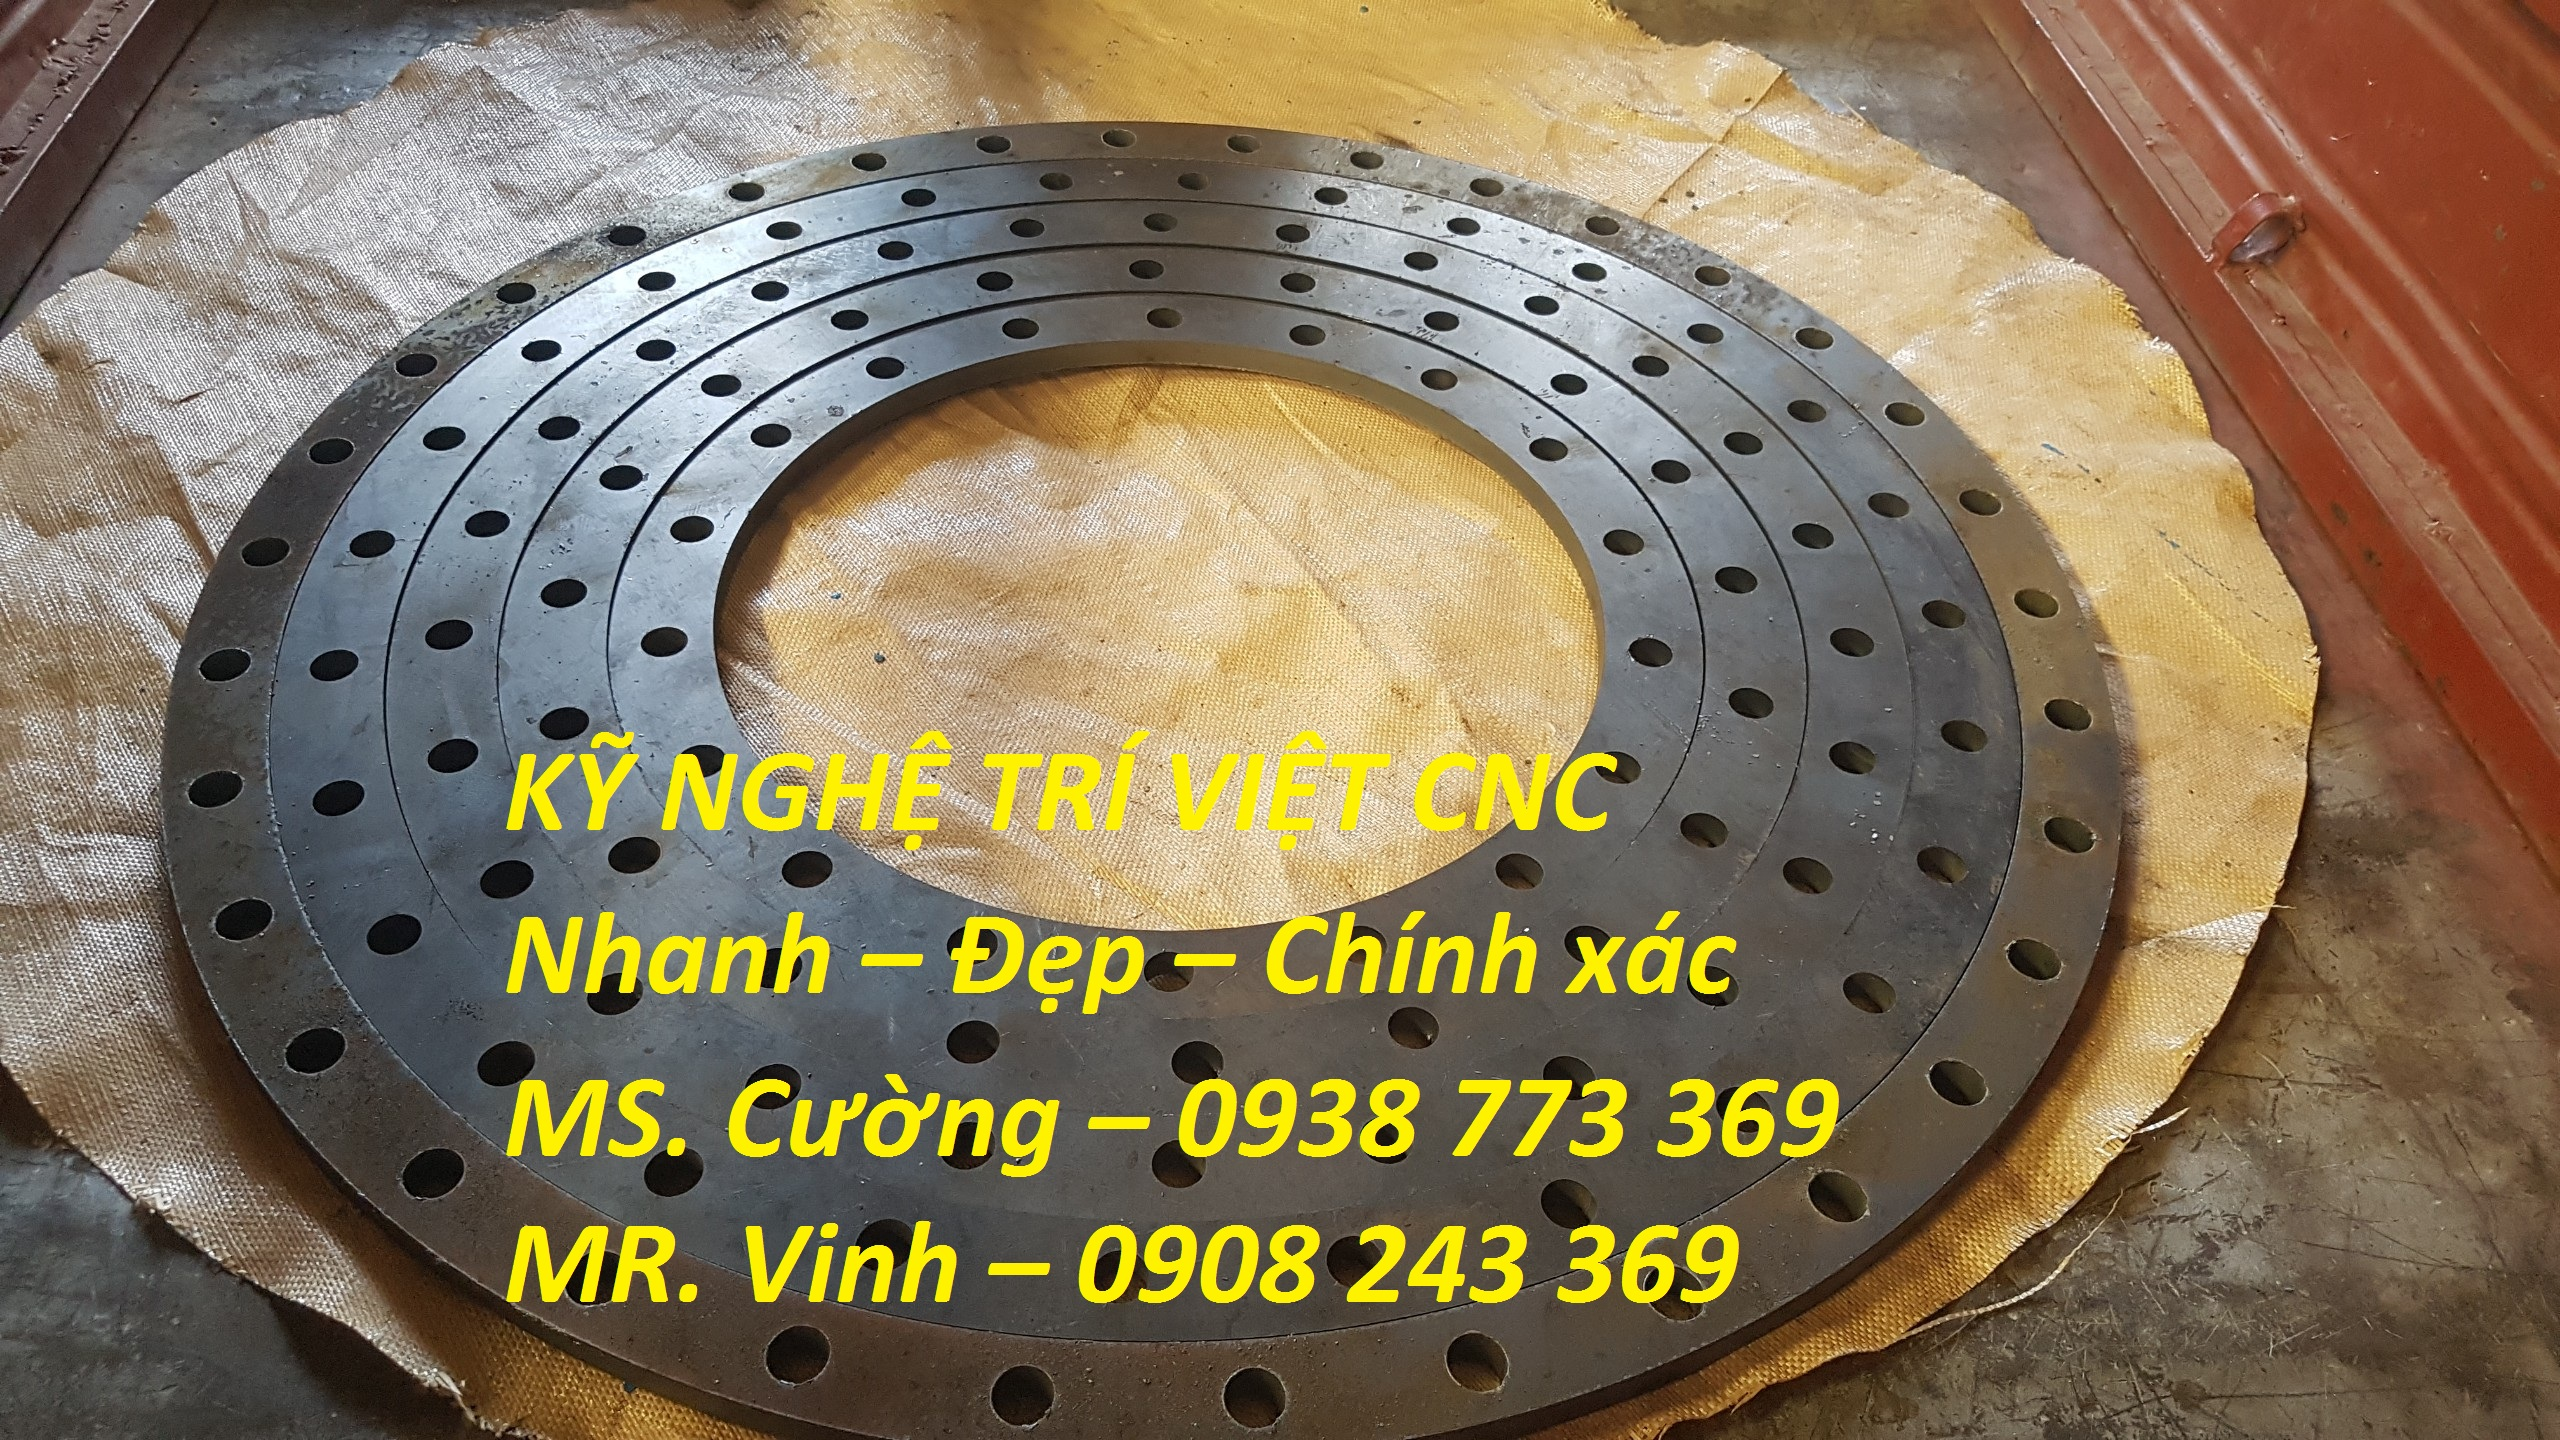 CONG TY KY NGHE TRI VIET